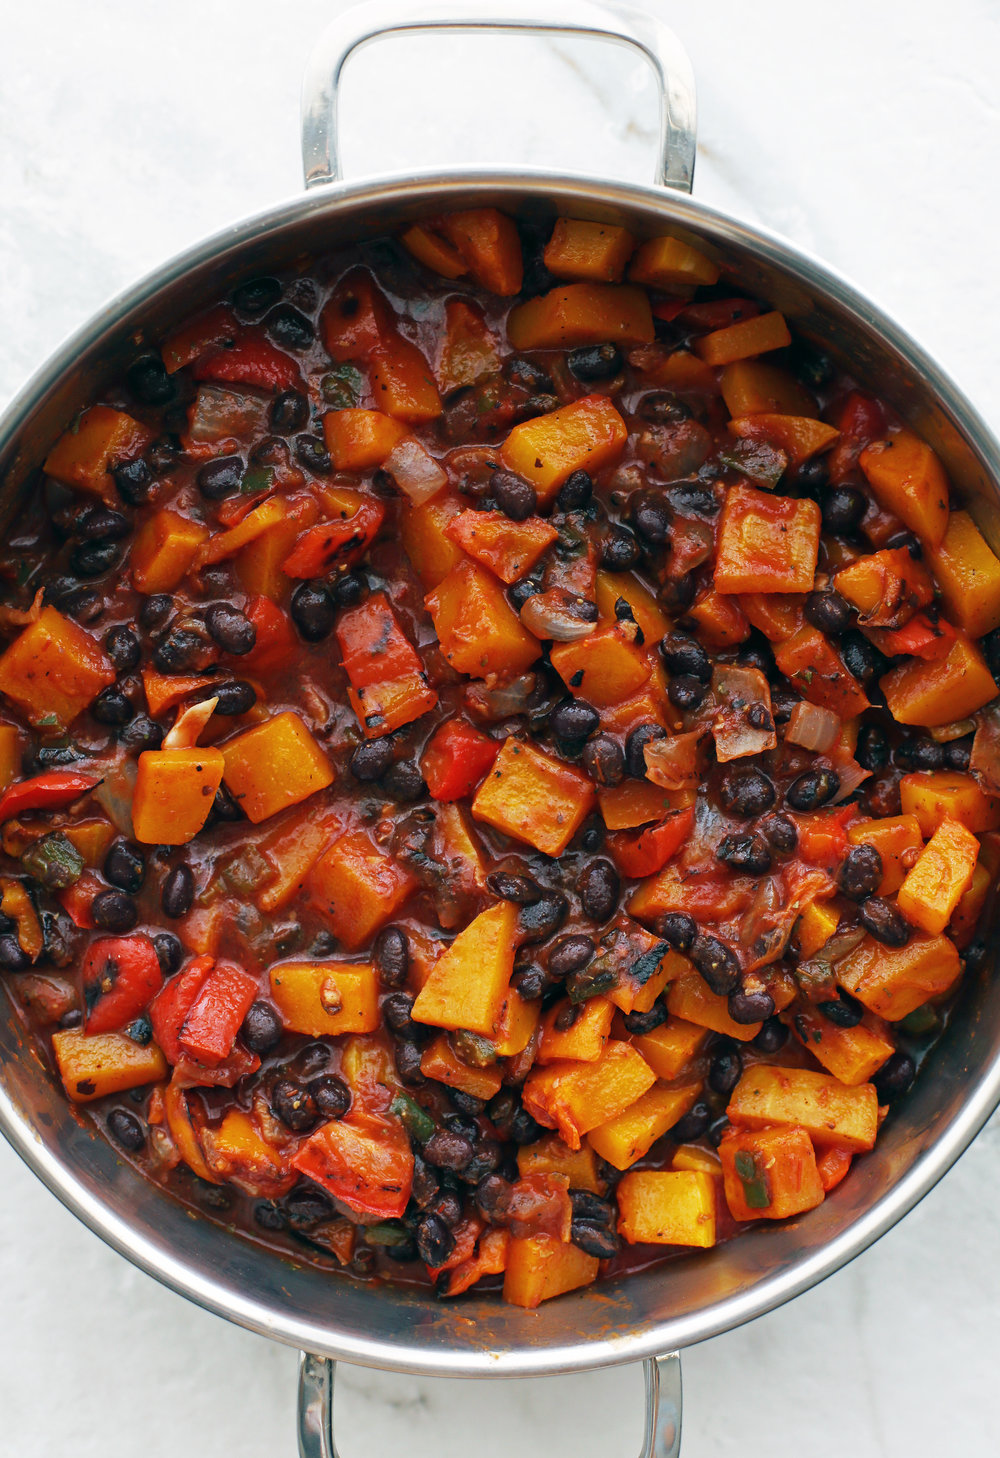 Roasted Butternut Squash and Black Bean Chili in a large metal pot.